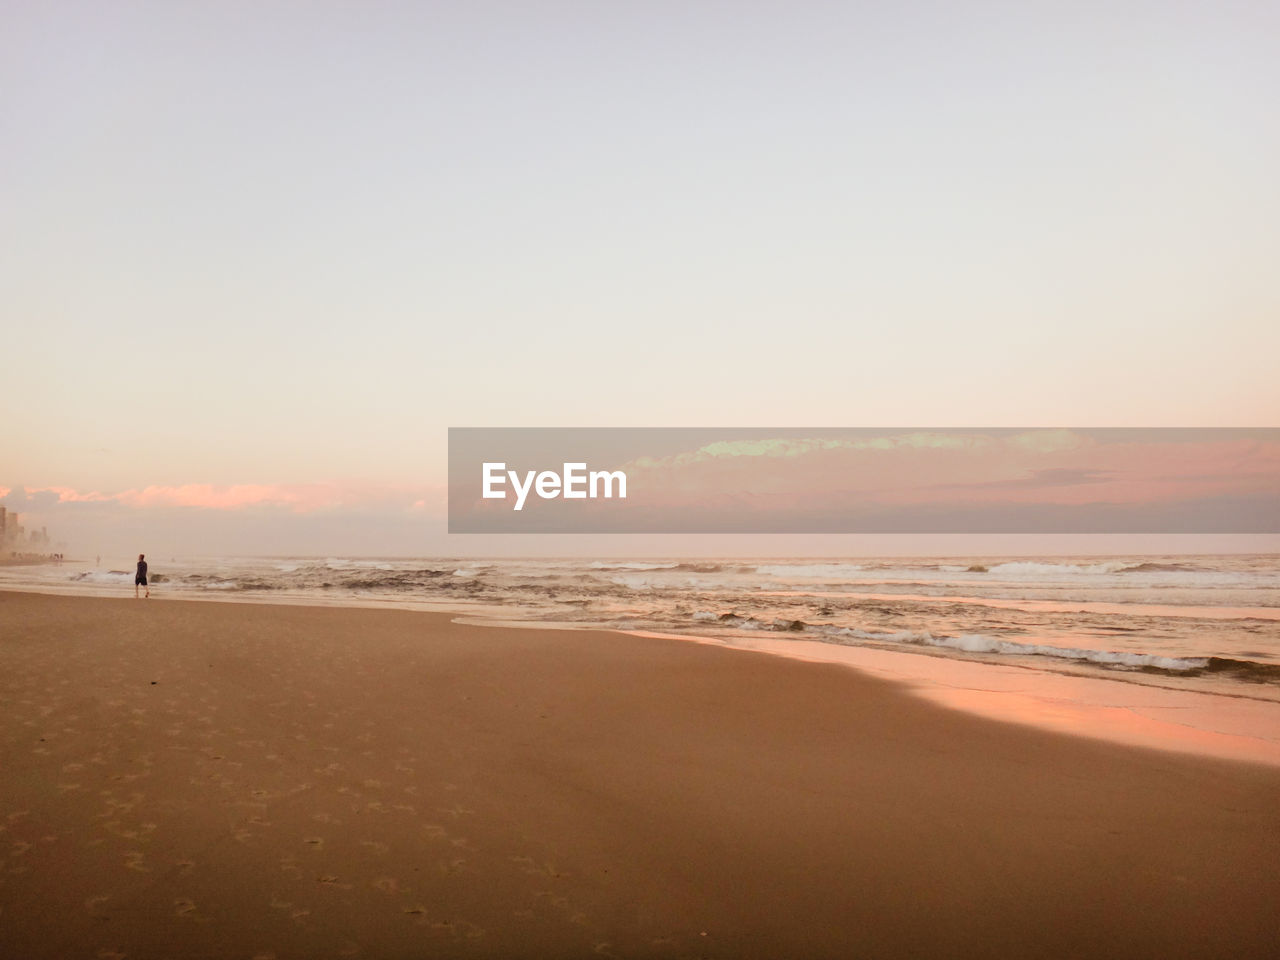 sea, beach, sunset, nature, shore, scenics, beauty in nature, water, tranquility, tranquil scene, sand, sky, horizon over water, outdoors, no people, day